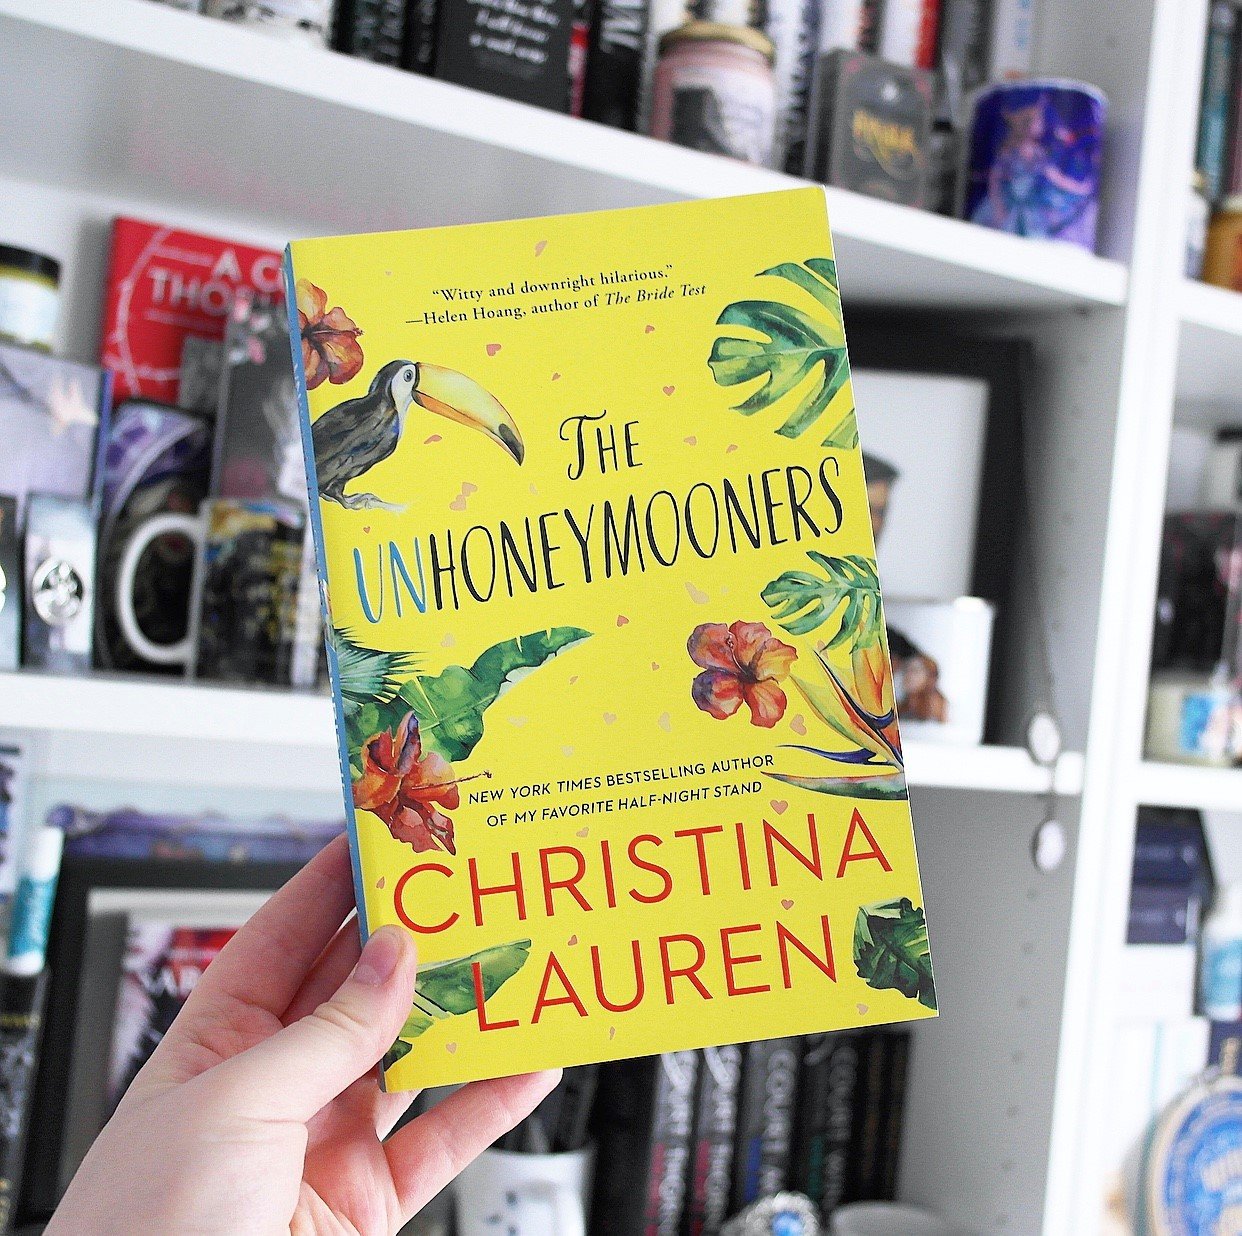 The Unhoneymooners by Christina Lauren, one of my six summer reads.